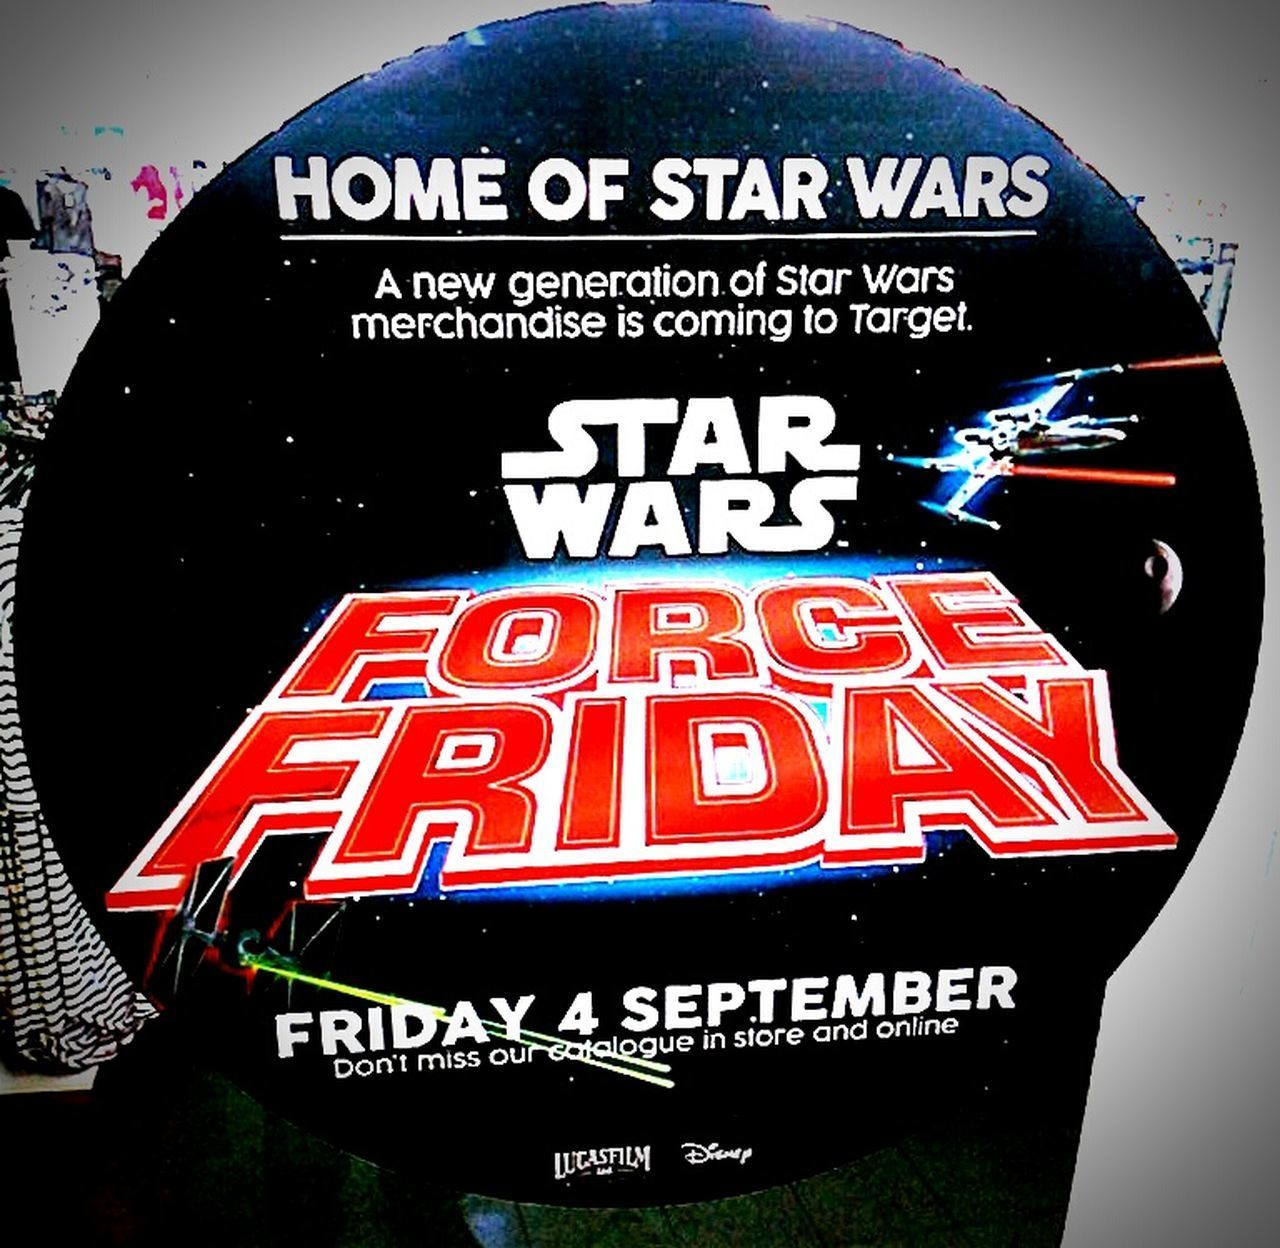 Star Wars Starwars Force Friday The Force Awakens Poster Collection Posterporn Postercollection Star Wars Collectables Star Wars The Force Awakens May The Force Be With You Poster May The 4th Be With You TheForceAwakens Starwarsporn Starwarstheforceawakens StarWars Collection Posters StarWarsCollection Wall Poster Notice Signporn Advertisingposters Advertisement Signage Notices Advertisement Posters